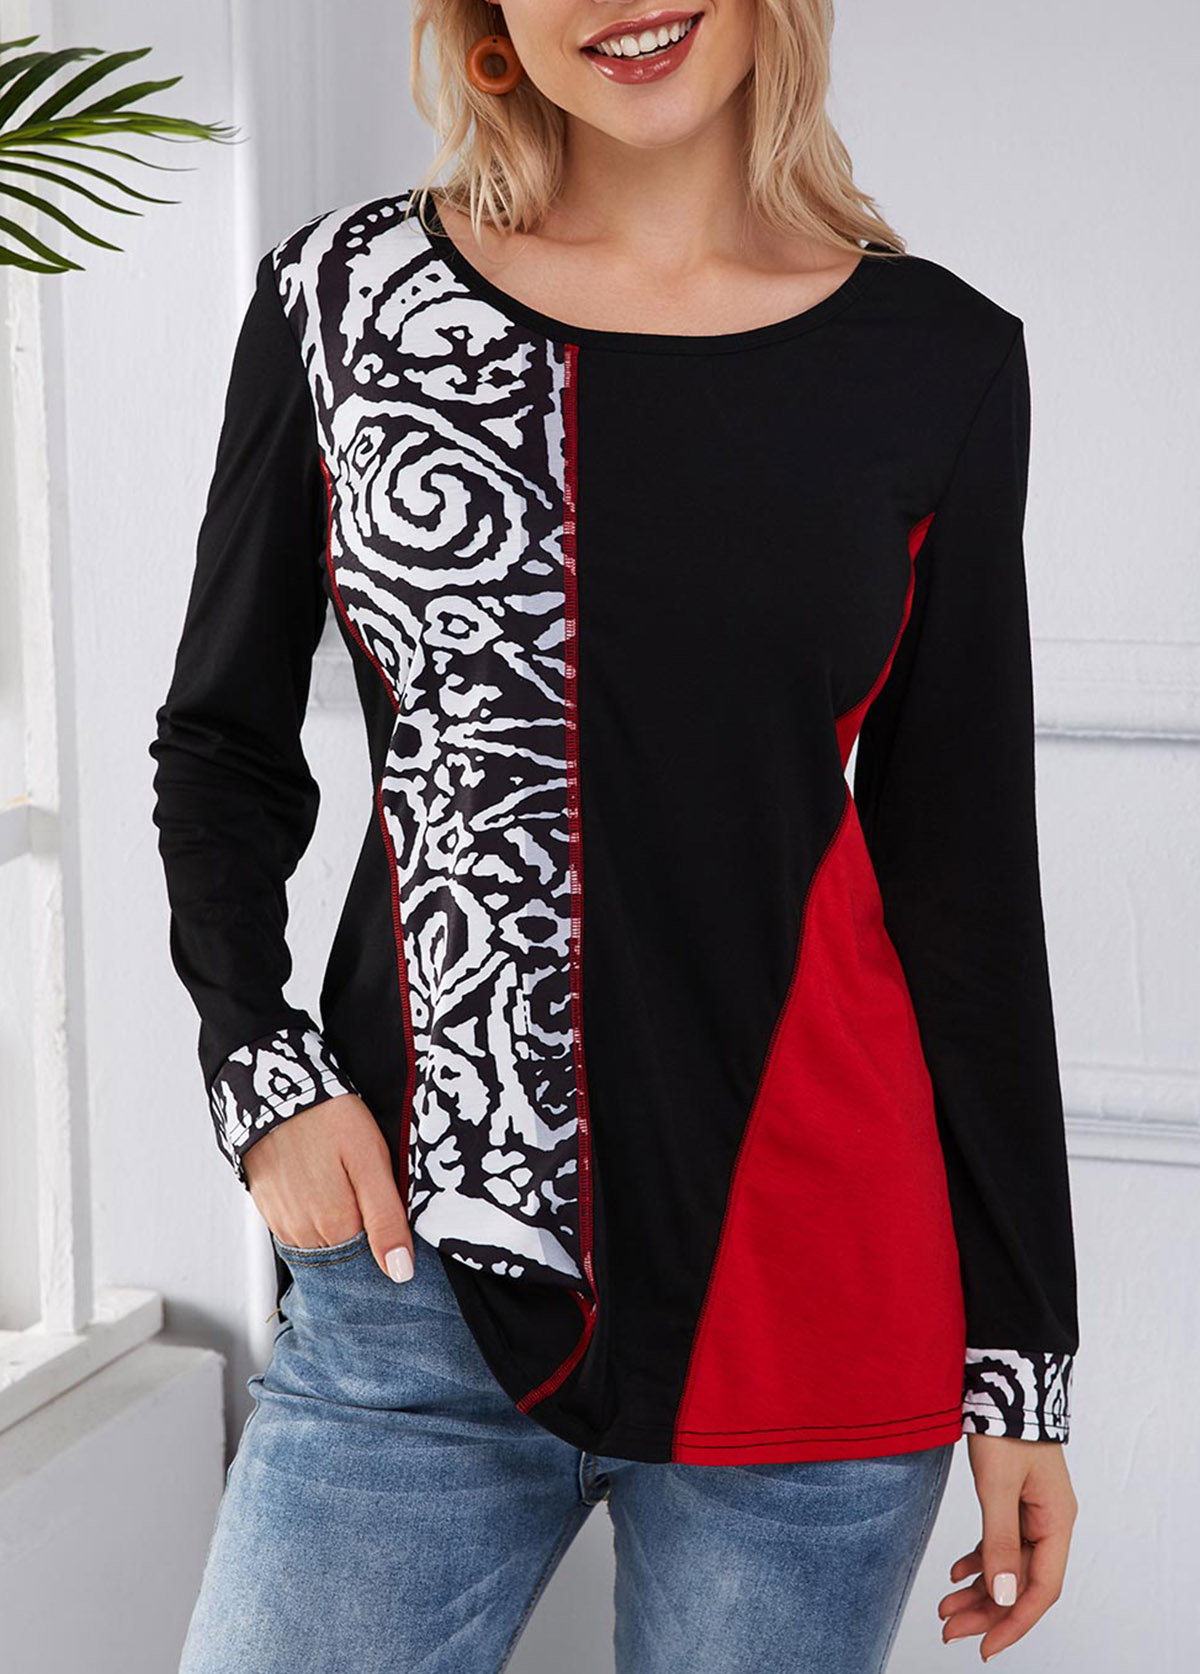 Printed Round Neck Long Sleeve Contrast T Shirt